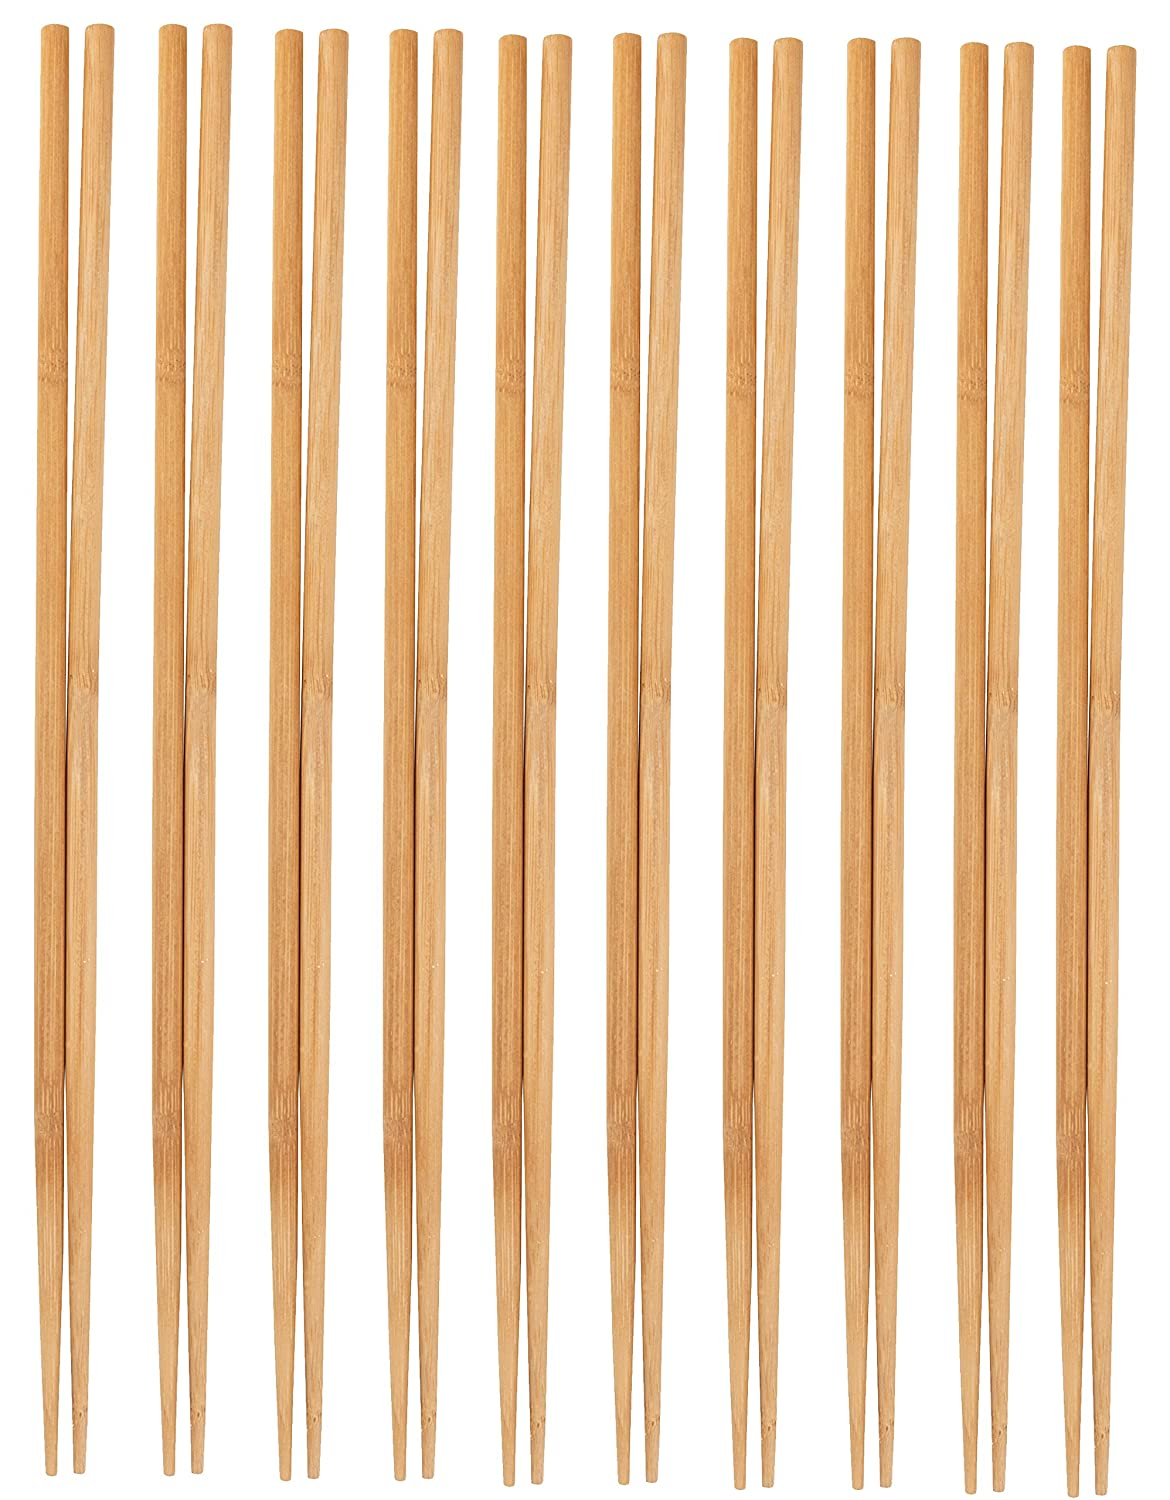 Cooking Chopsticks - 10-Pack Extra Long Cooking Chopsticks, For Cooking, Frying, Hot Pot, Noodles in Chinese and Japanese Style, Natural Bamboo, 16.5 Inches Juvale